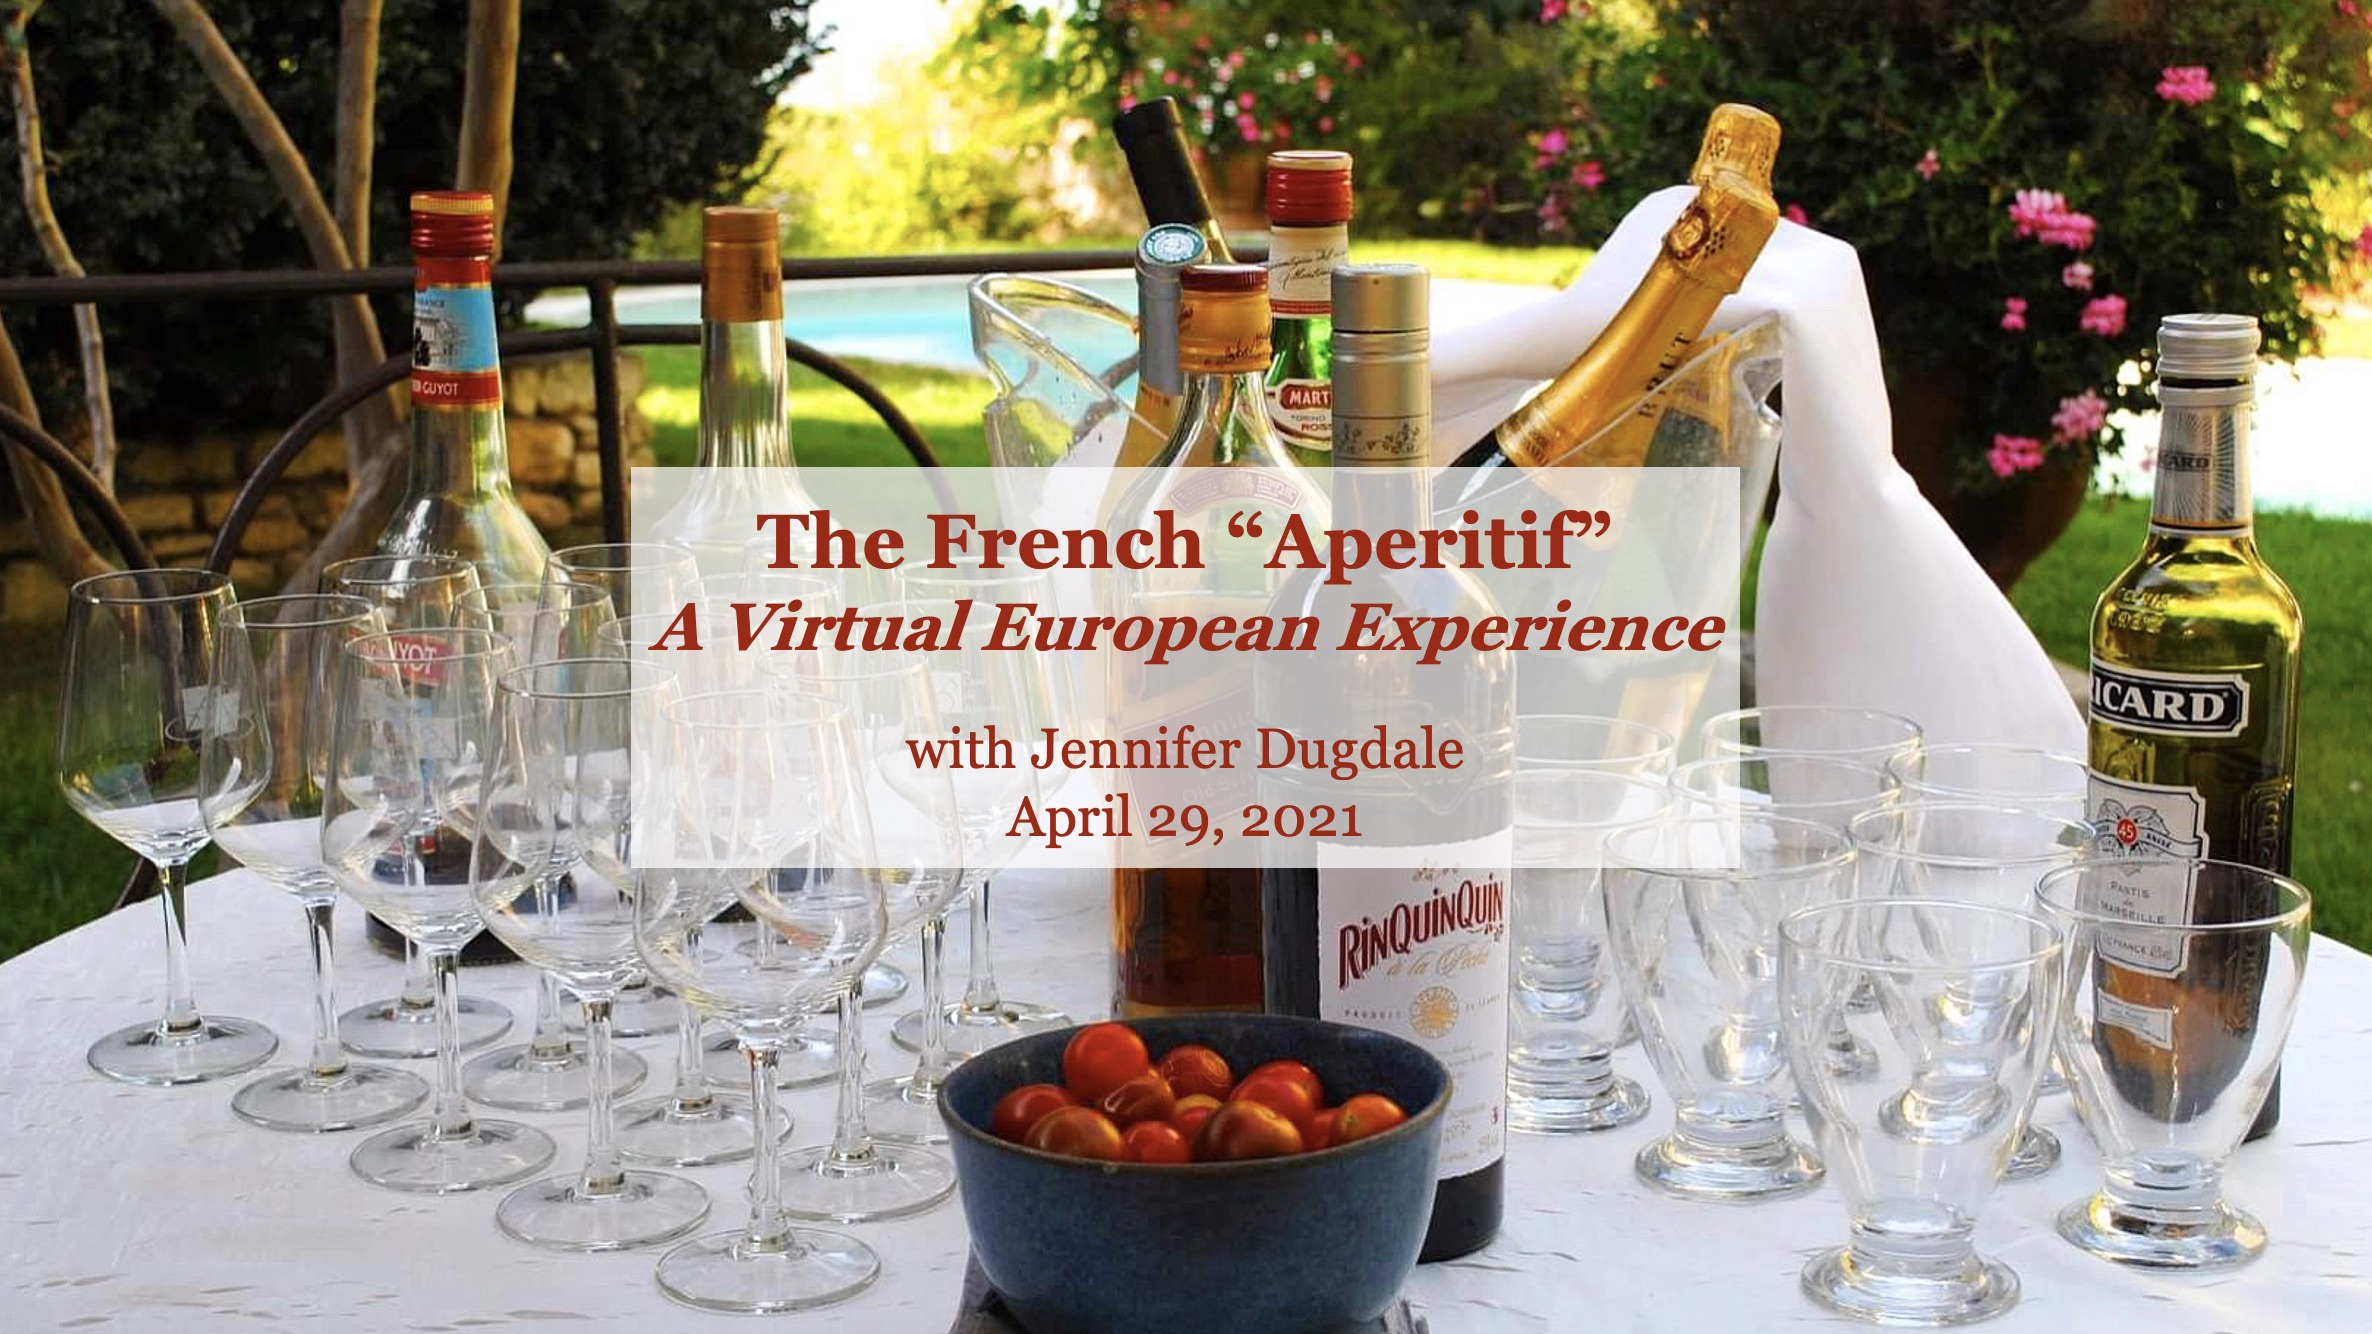 The French Aperitif